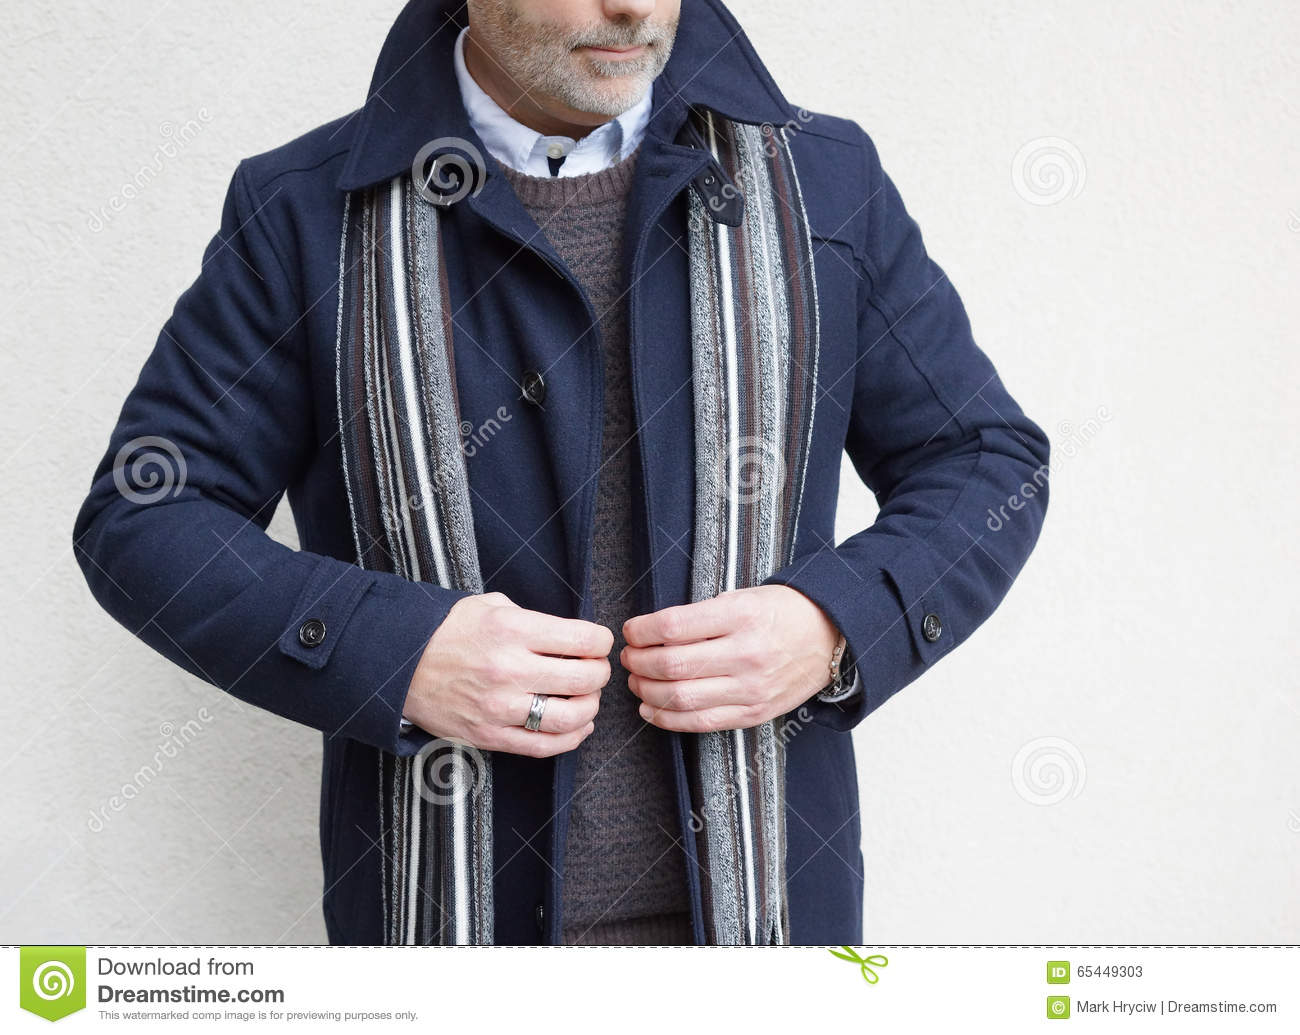 Mature Man Standing and Buttoning His Jacket